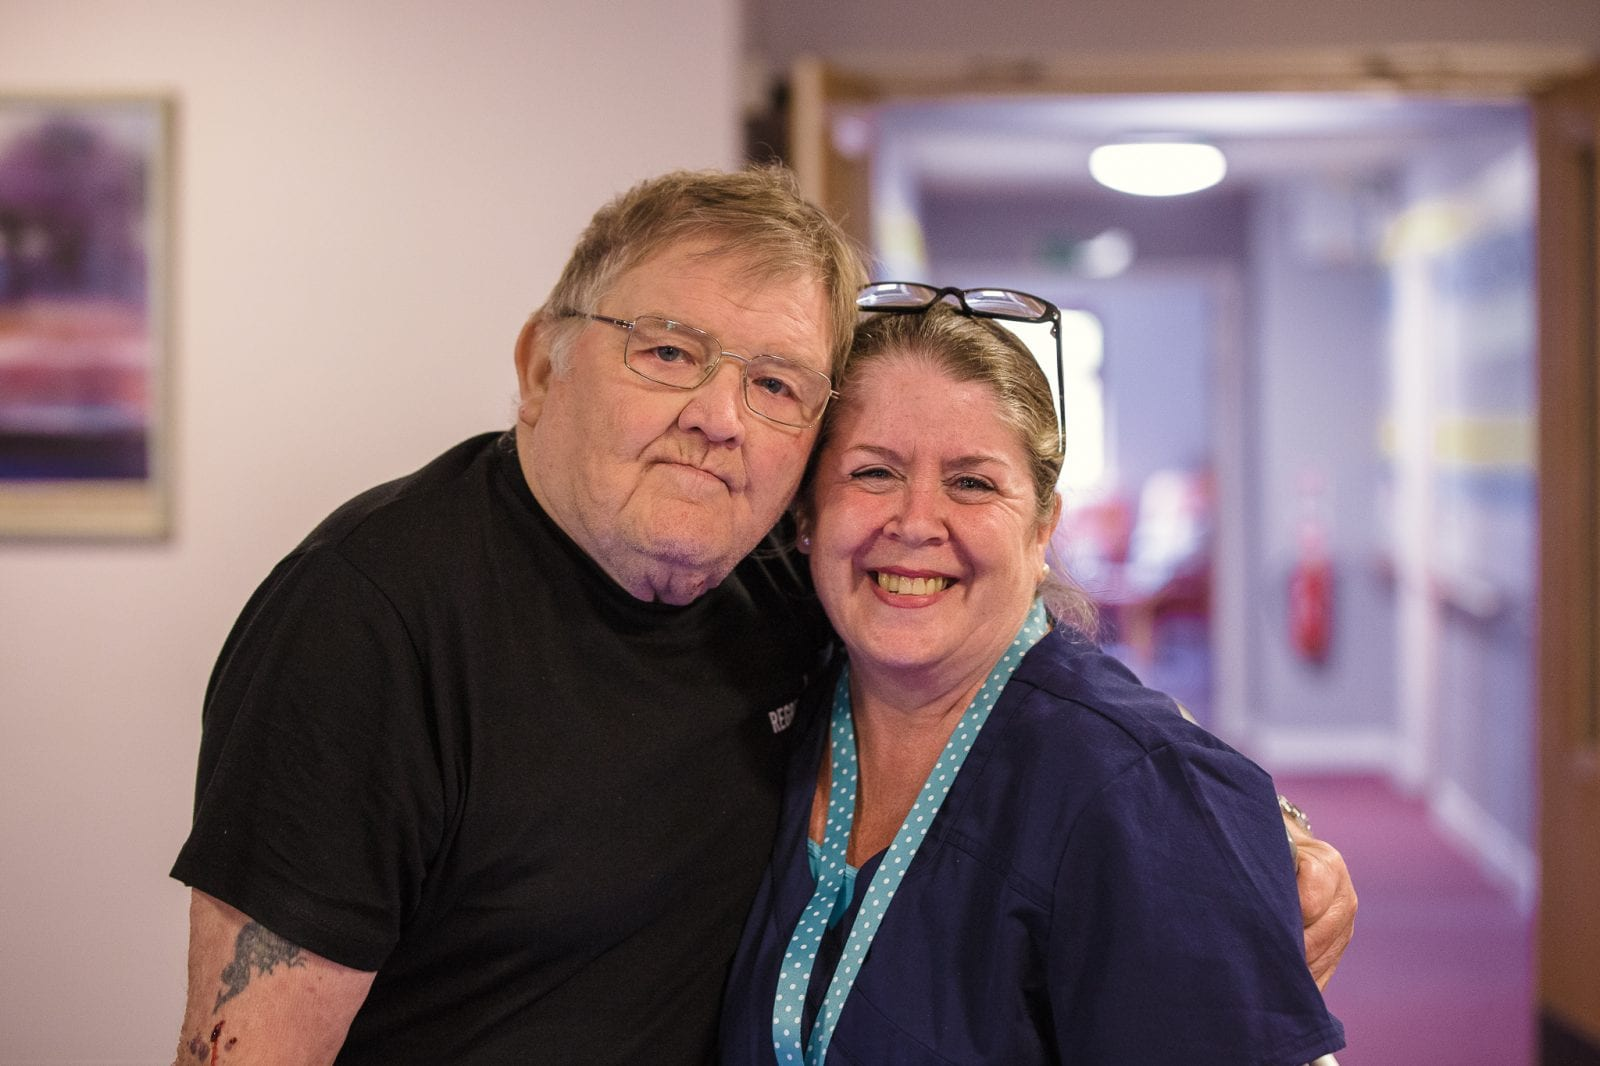 Resident and Carer at Platters Farm Lodge